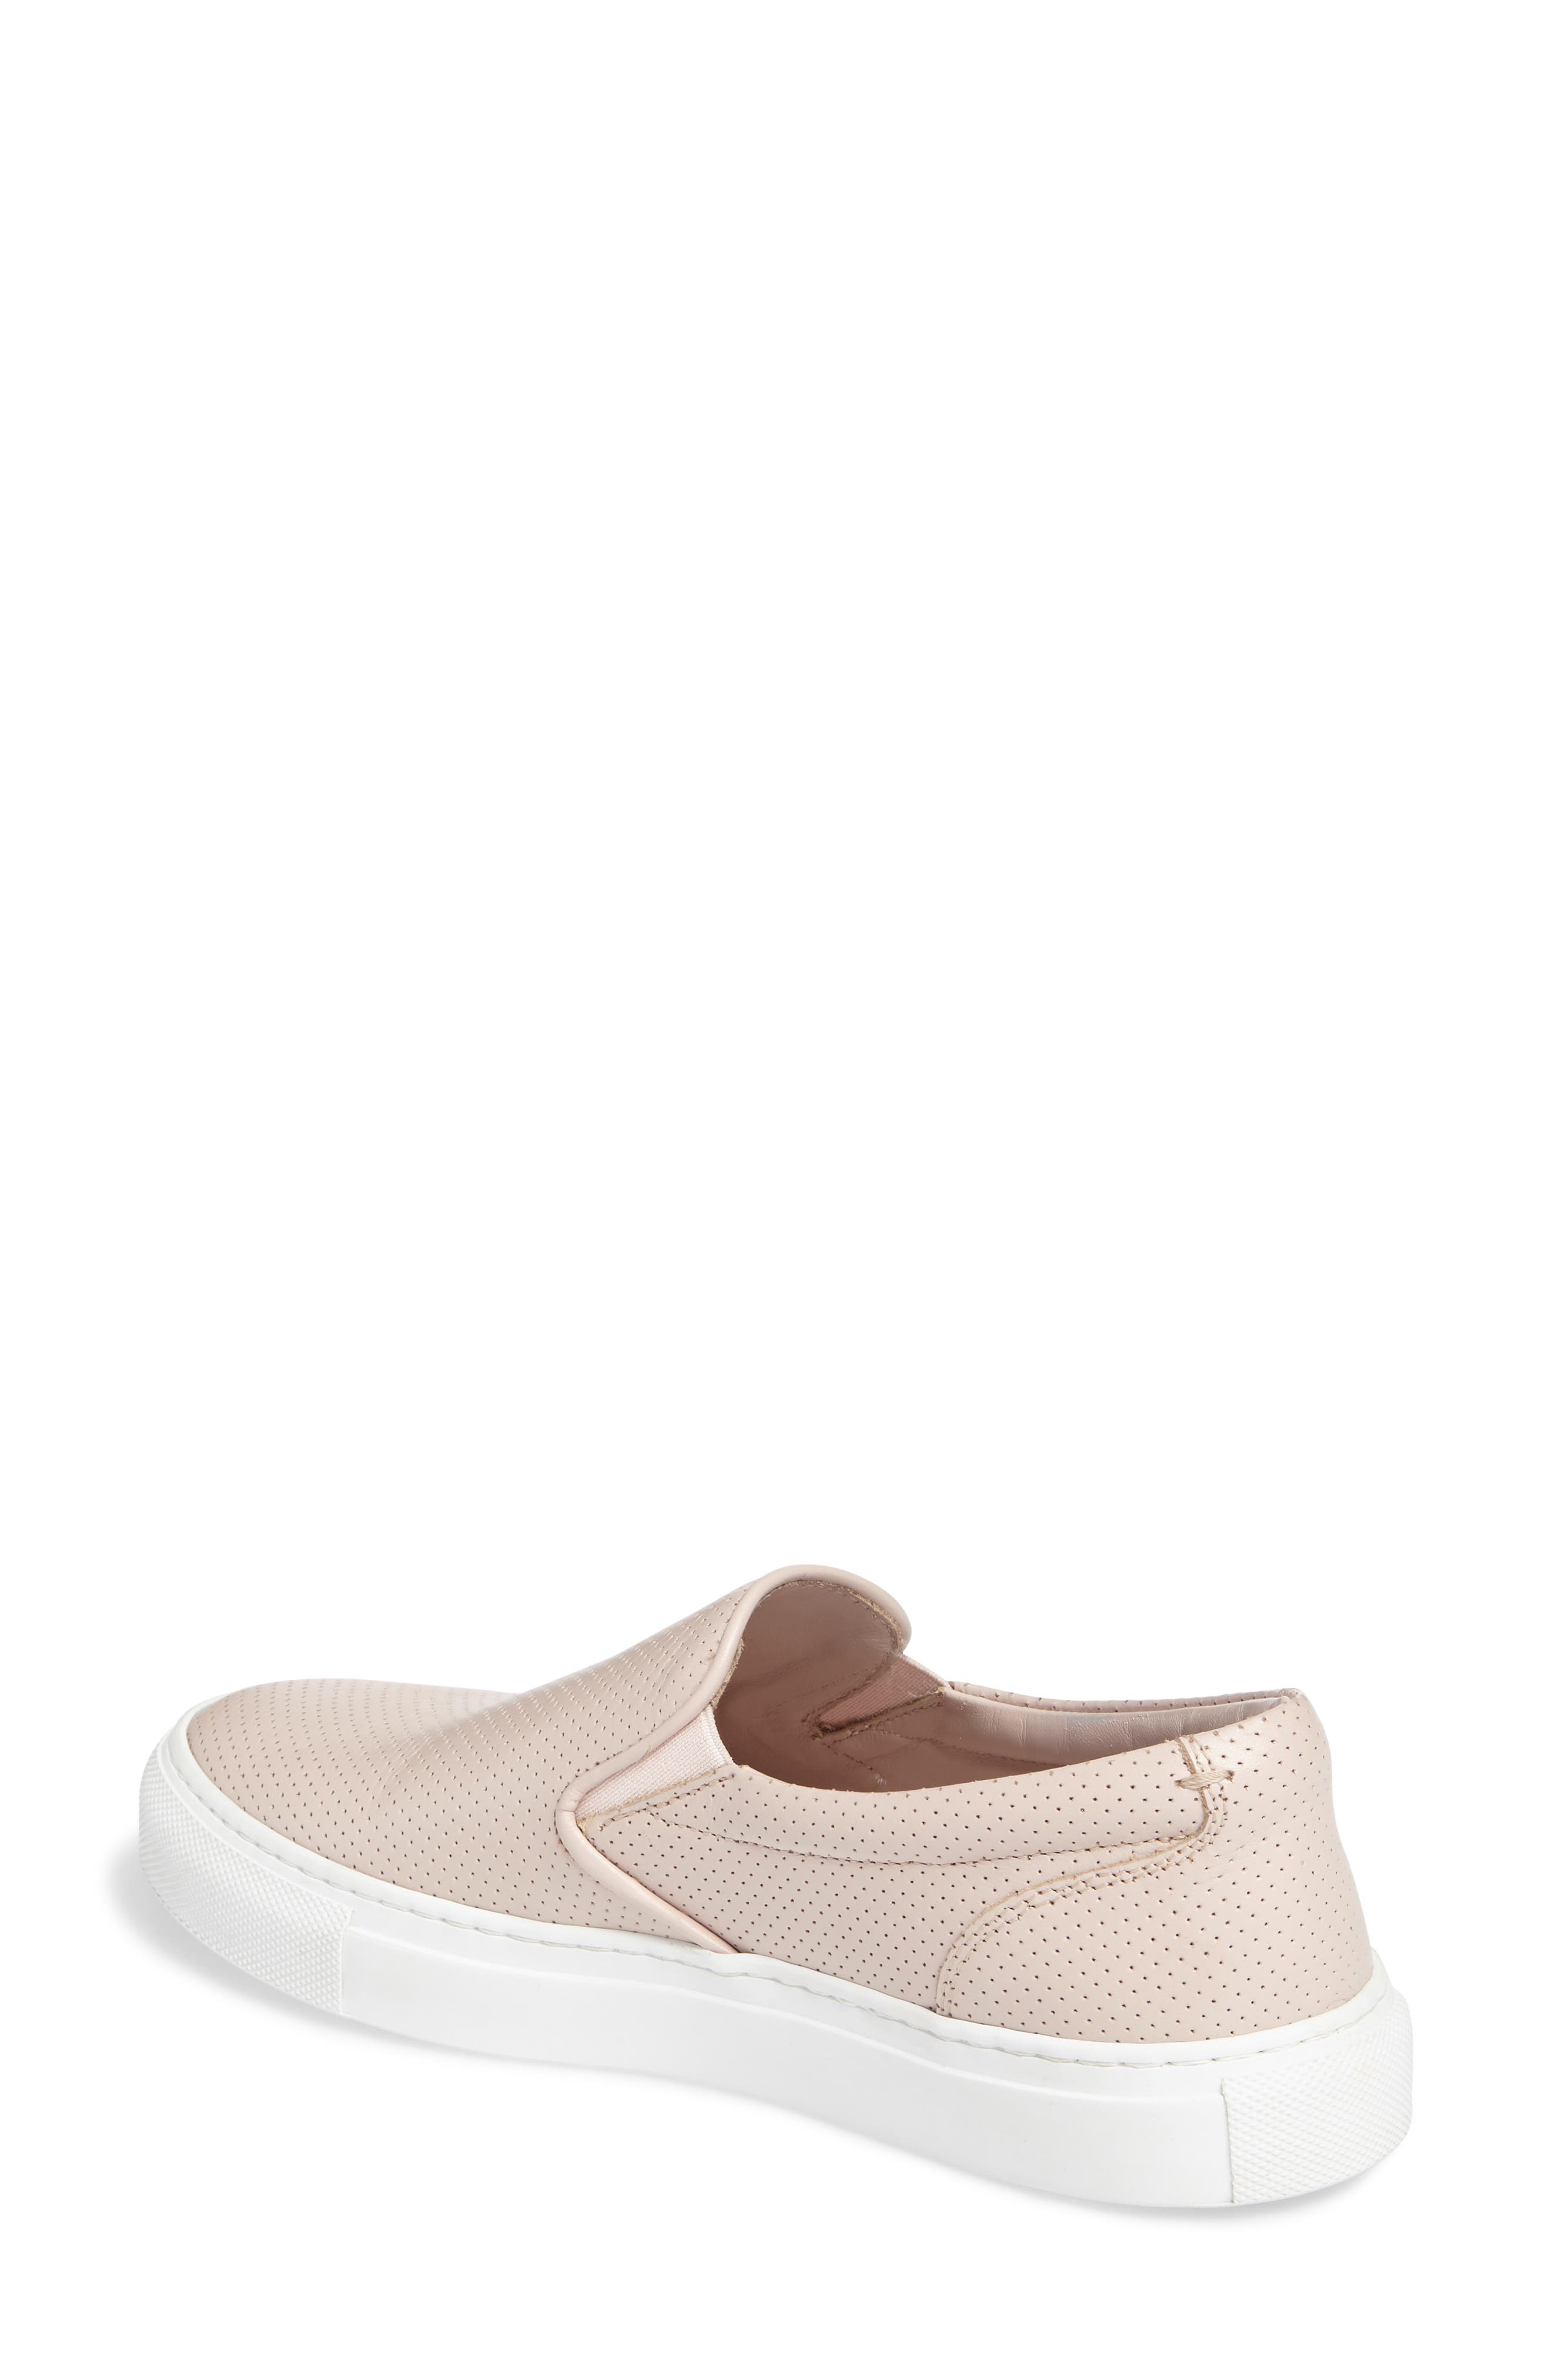 Wooster Slip-On Sneaker,                             Alternate thumbnail 2, color,                             Blush Perforated